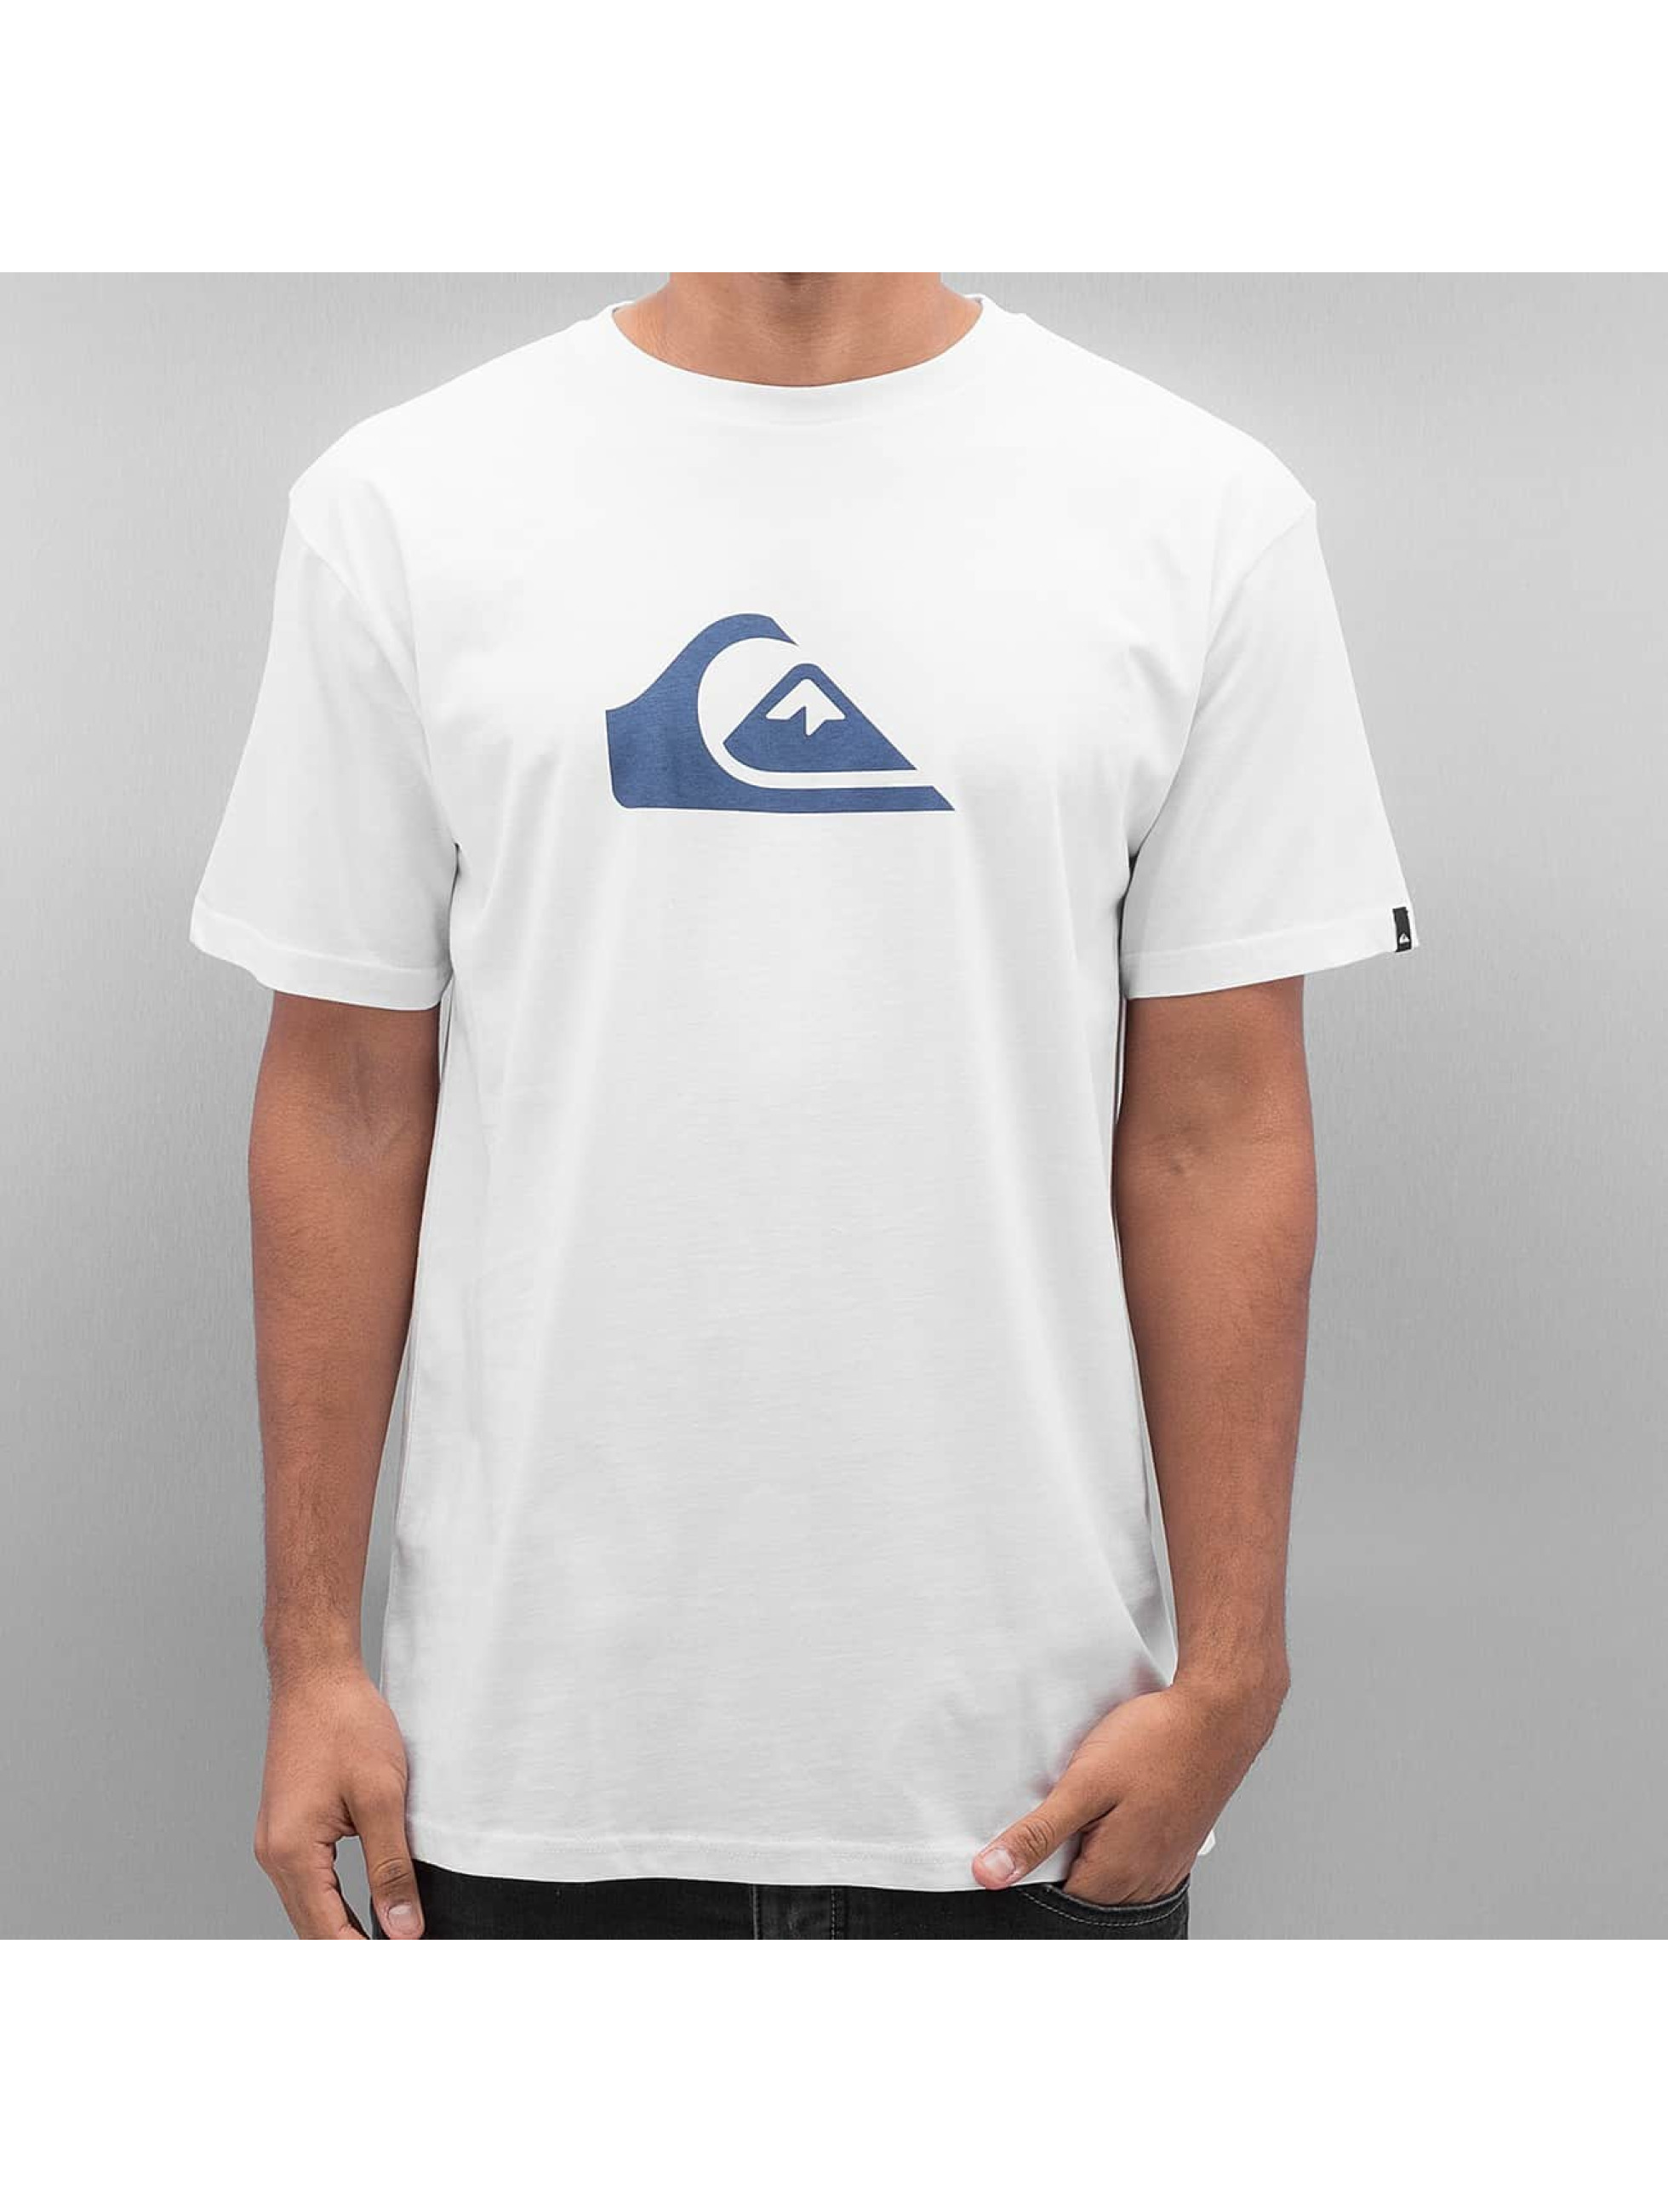 Quiksilver / T-Shirt Everyday MW Classic in white